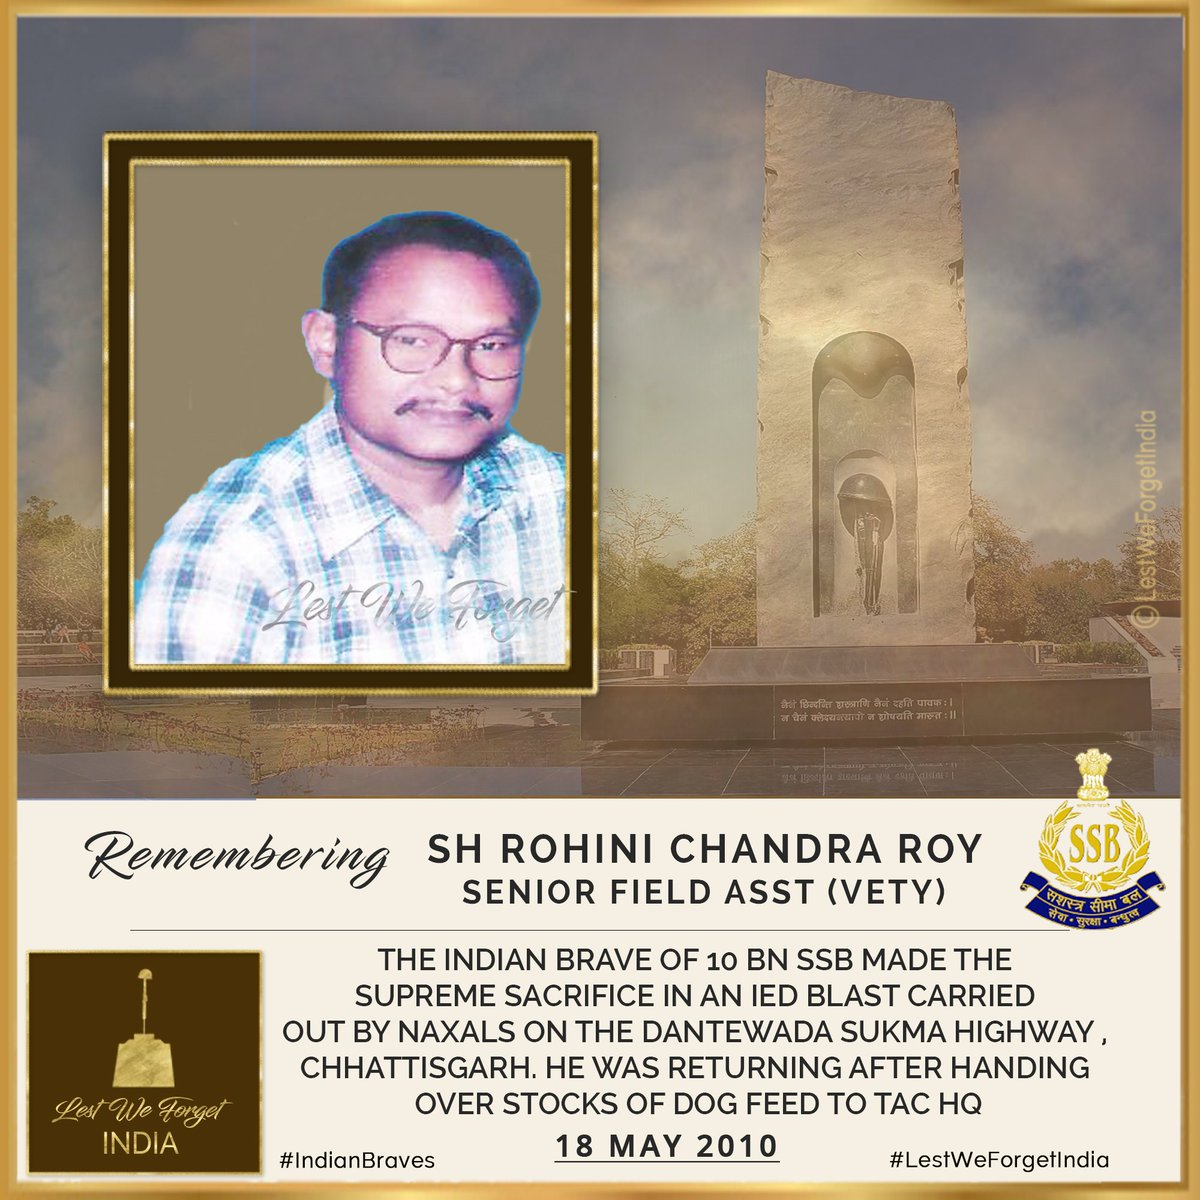 #LestWeForgetIndia Sh. Rohini Chandra Roy,10 BN #SSB @DGSSB, who made the supreme sacrifice #OnThisDay 18 May in 2010 in an IED blast by Naxals on the Dantewada Sukma highway, Chhattisgarh.  Remember the #IndianBrave Senior Fd Asst (veterinary) and his service to the Nation<br>http://pic.twitter.com/ML30XlvQvl